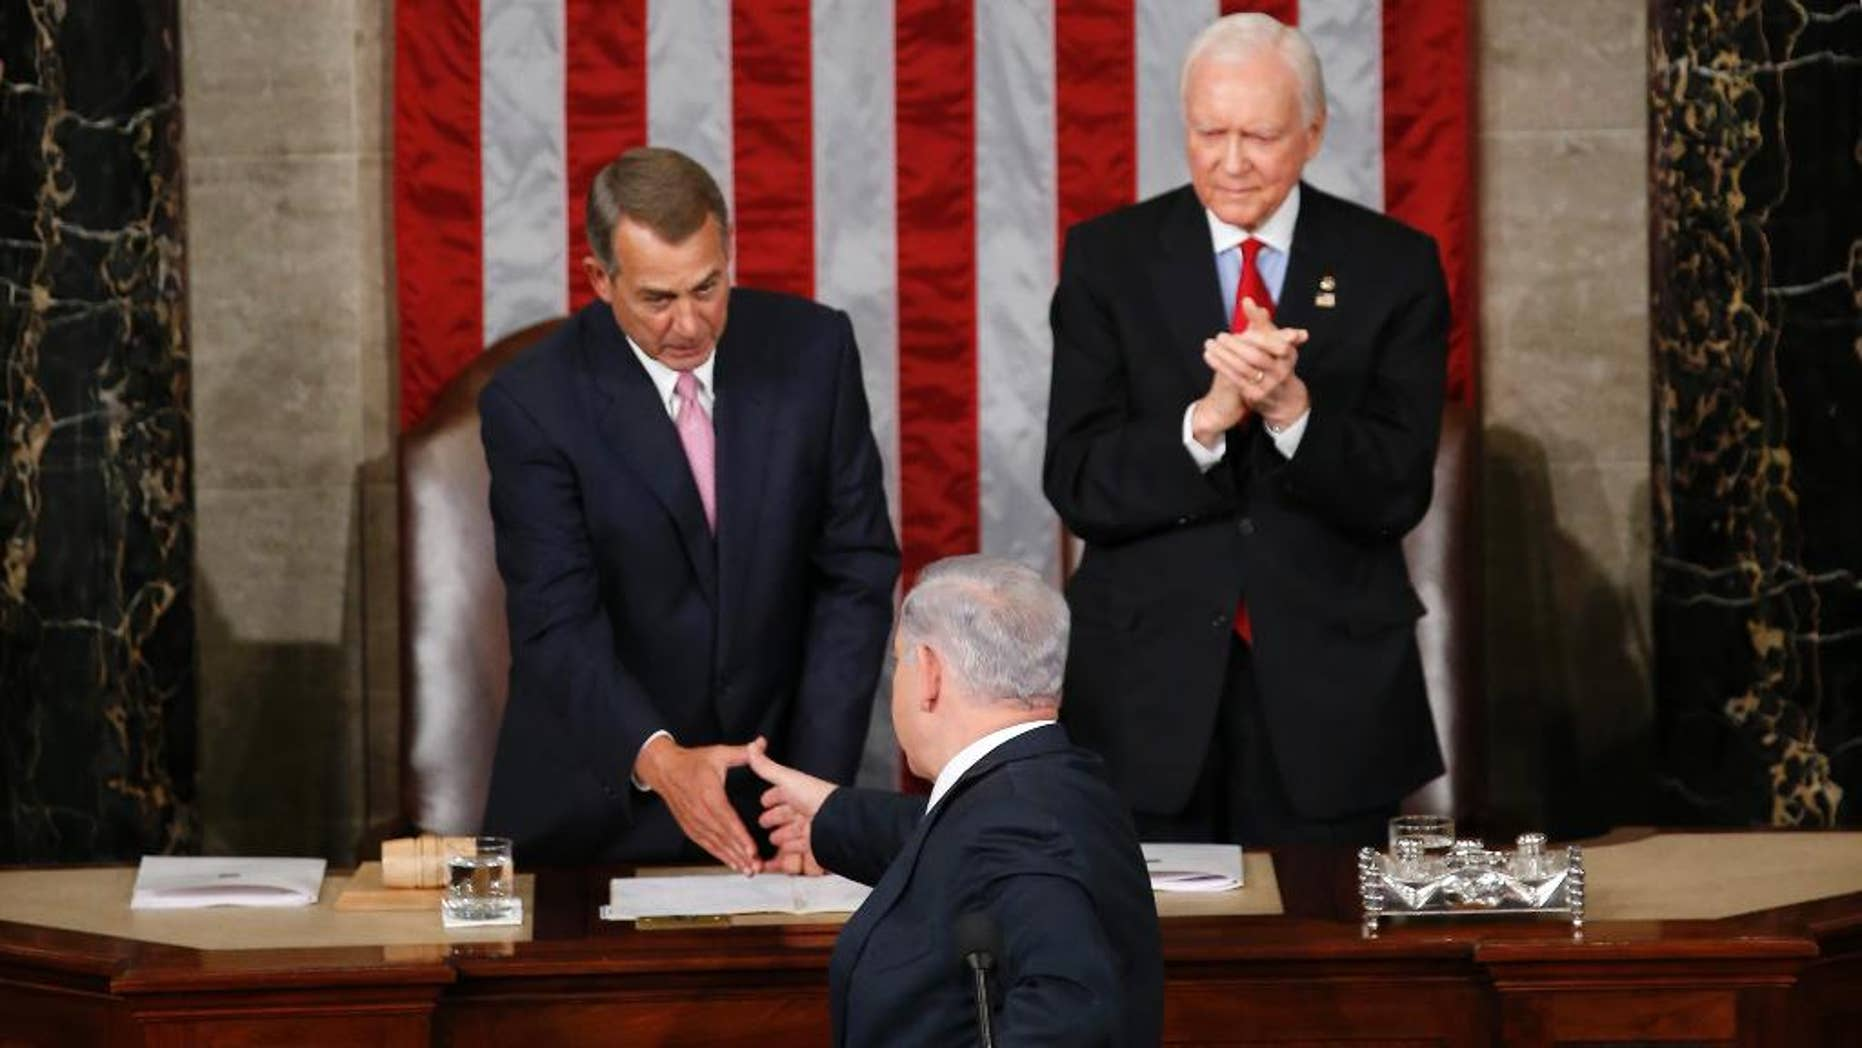 """Israeli Prime Minister Benjamin Netanyahu turns and shake hands with House Speaker John Boehner of Ohio hand after addressing a joint meeting of Congress on Capitol Hill in Washington, Tuesday, March 3, 2015. In a speech that stirred political intrigue in two countries, Netanyahu told Congress that negotiations underway between Iran and the U.S. would """"all but guarantee"""" that Tehran will get nuclear weapons, a step that the world must avoid at all costs. Sen. Orrin Hatch, R-Utah applauds at right.  (AP Photo/Andrew Harnik)"""